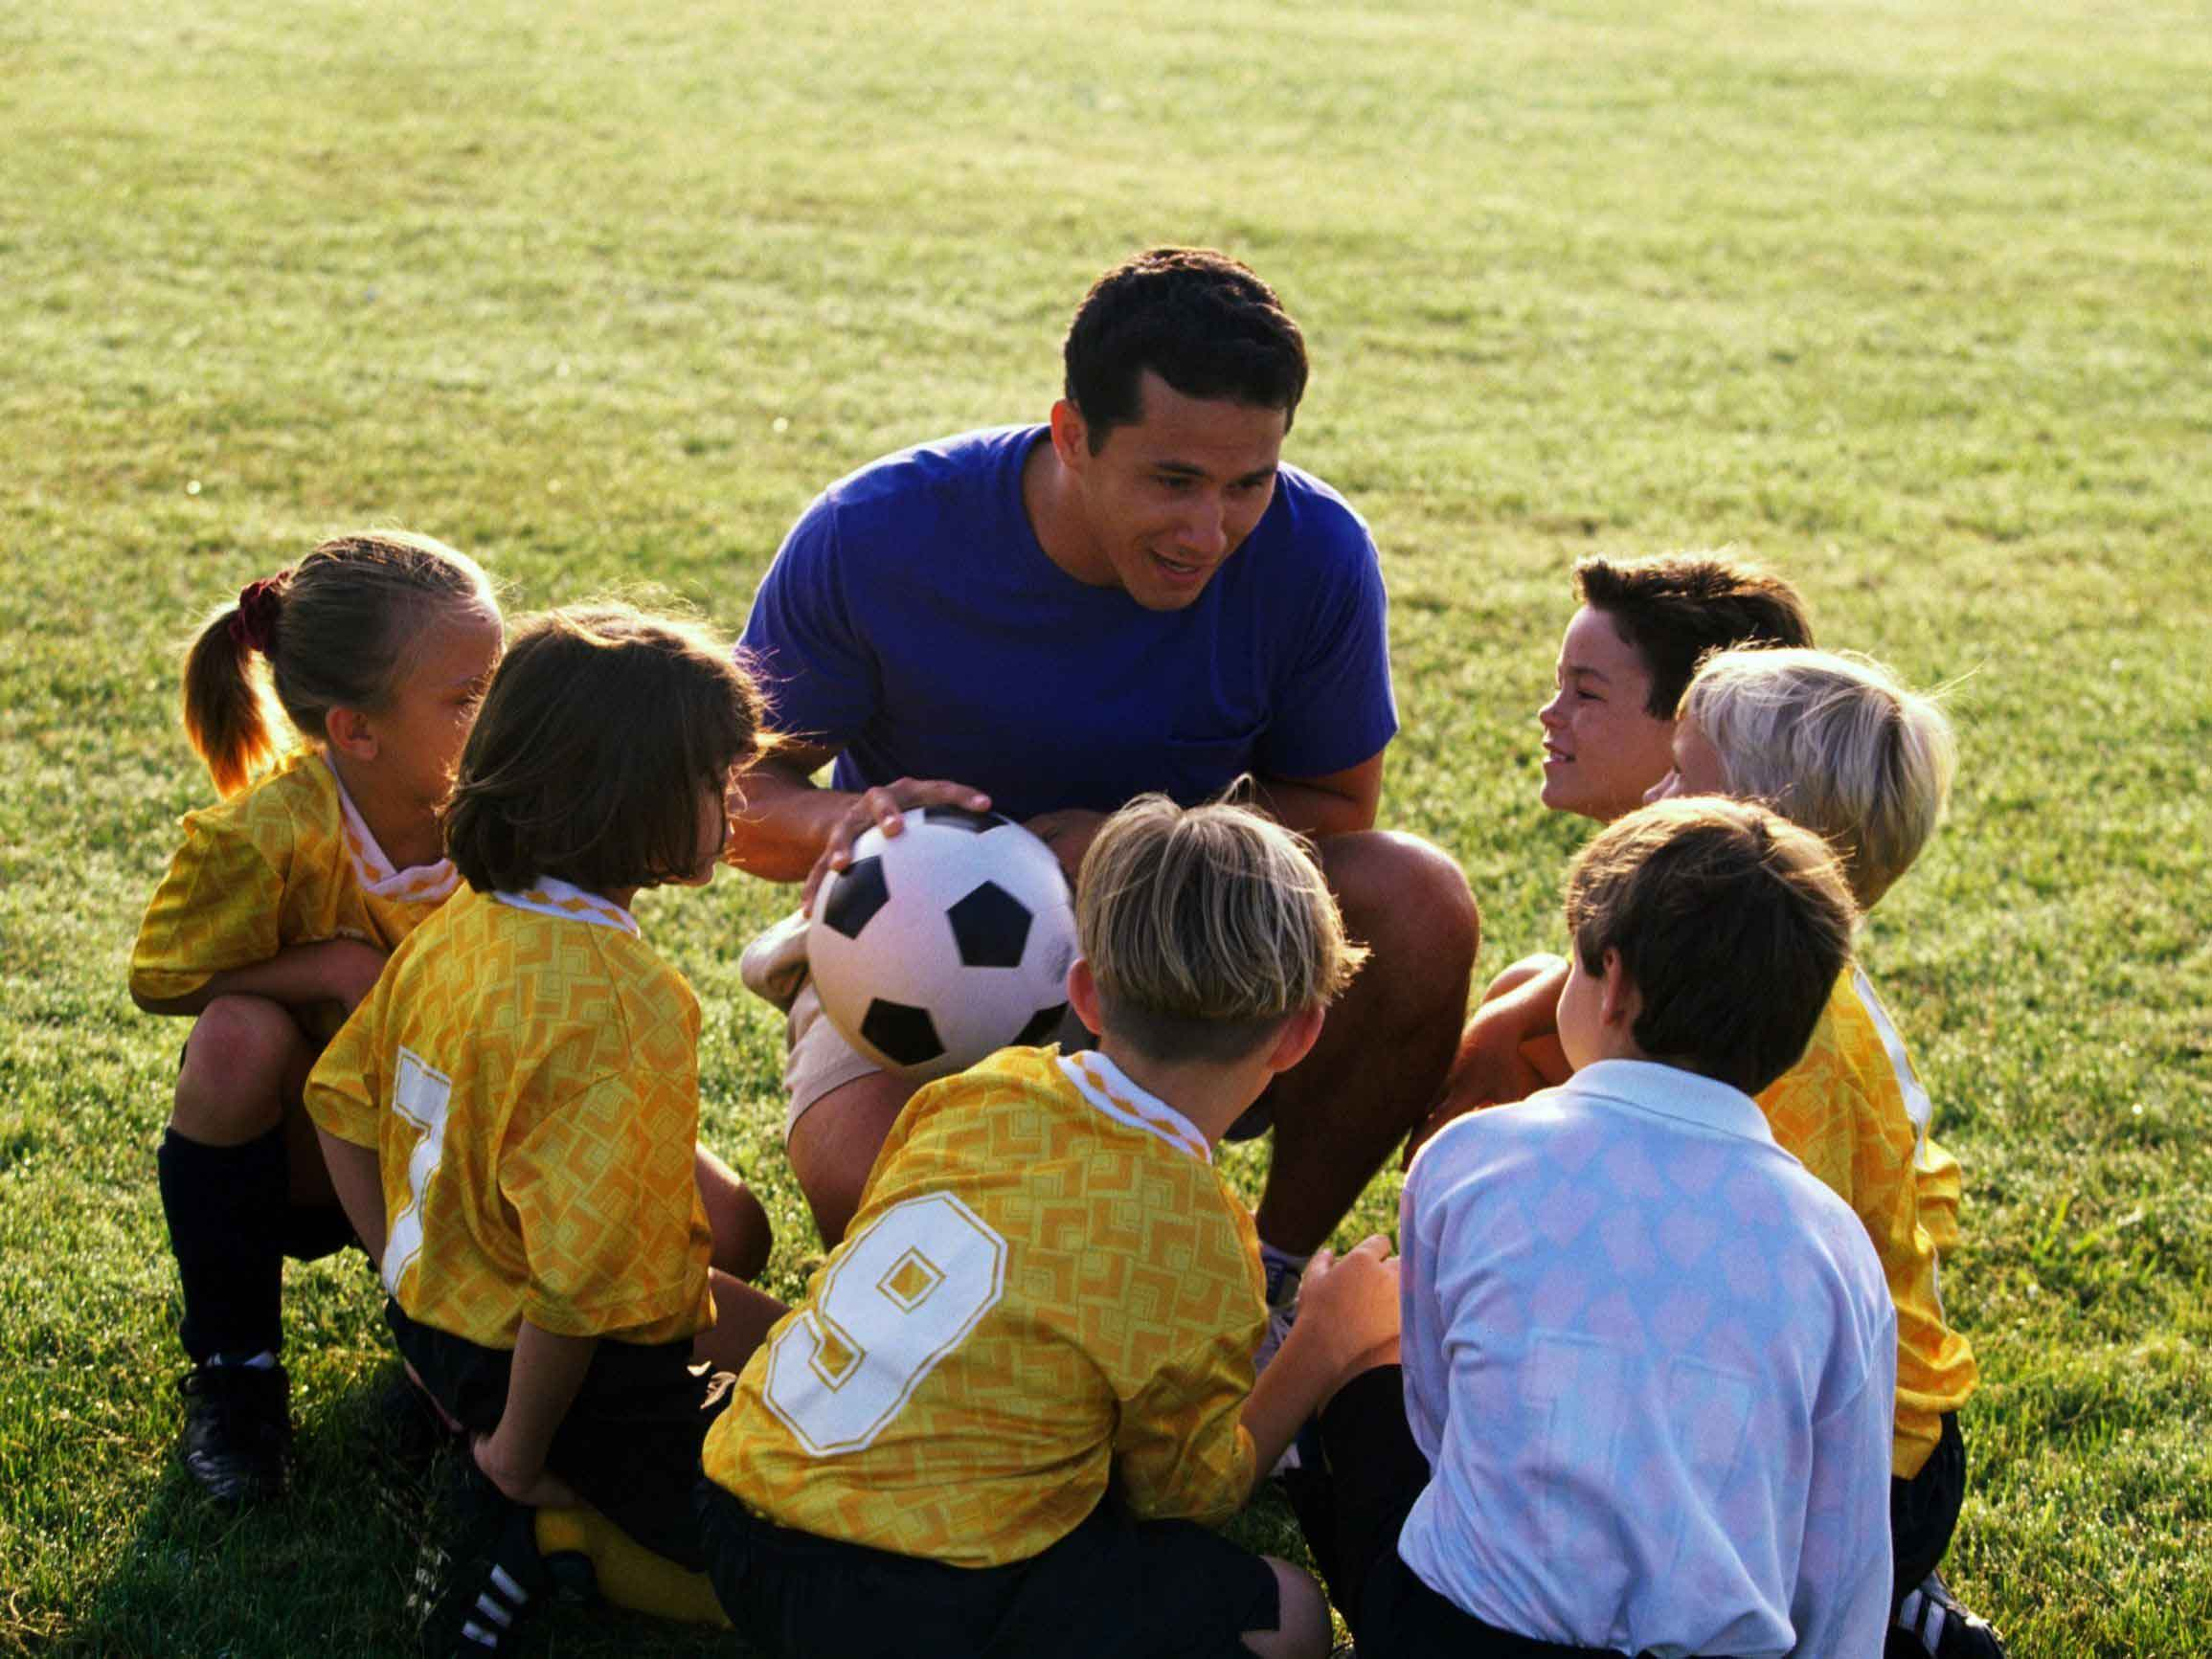 Soccer coach talking to children in yellow uniforms